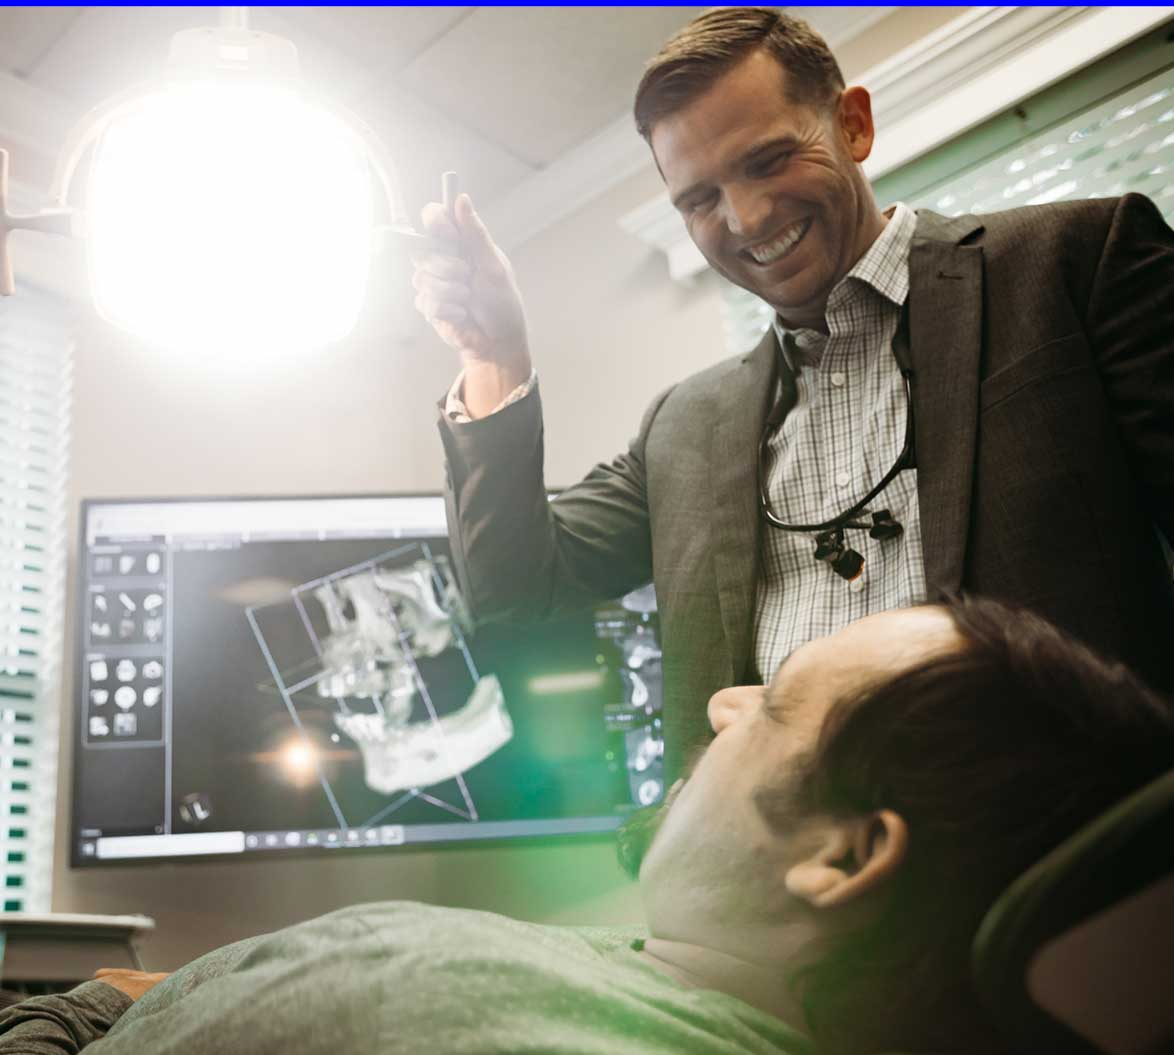 Photo of Dr. Scott smiling at a patient with a 3D x-ray scan in the background